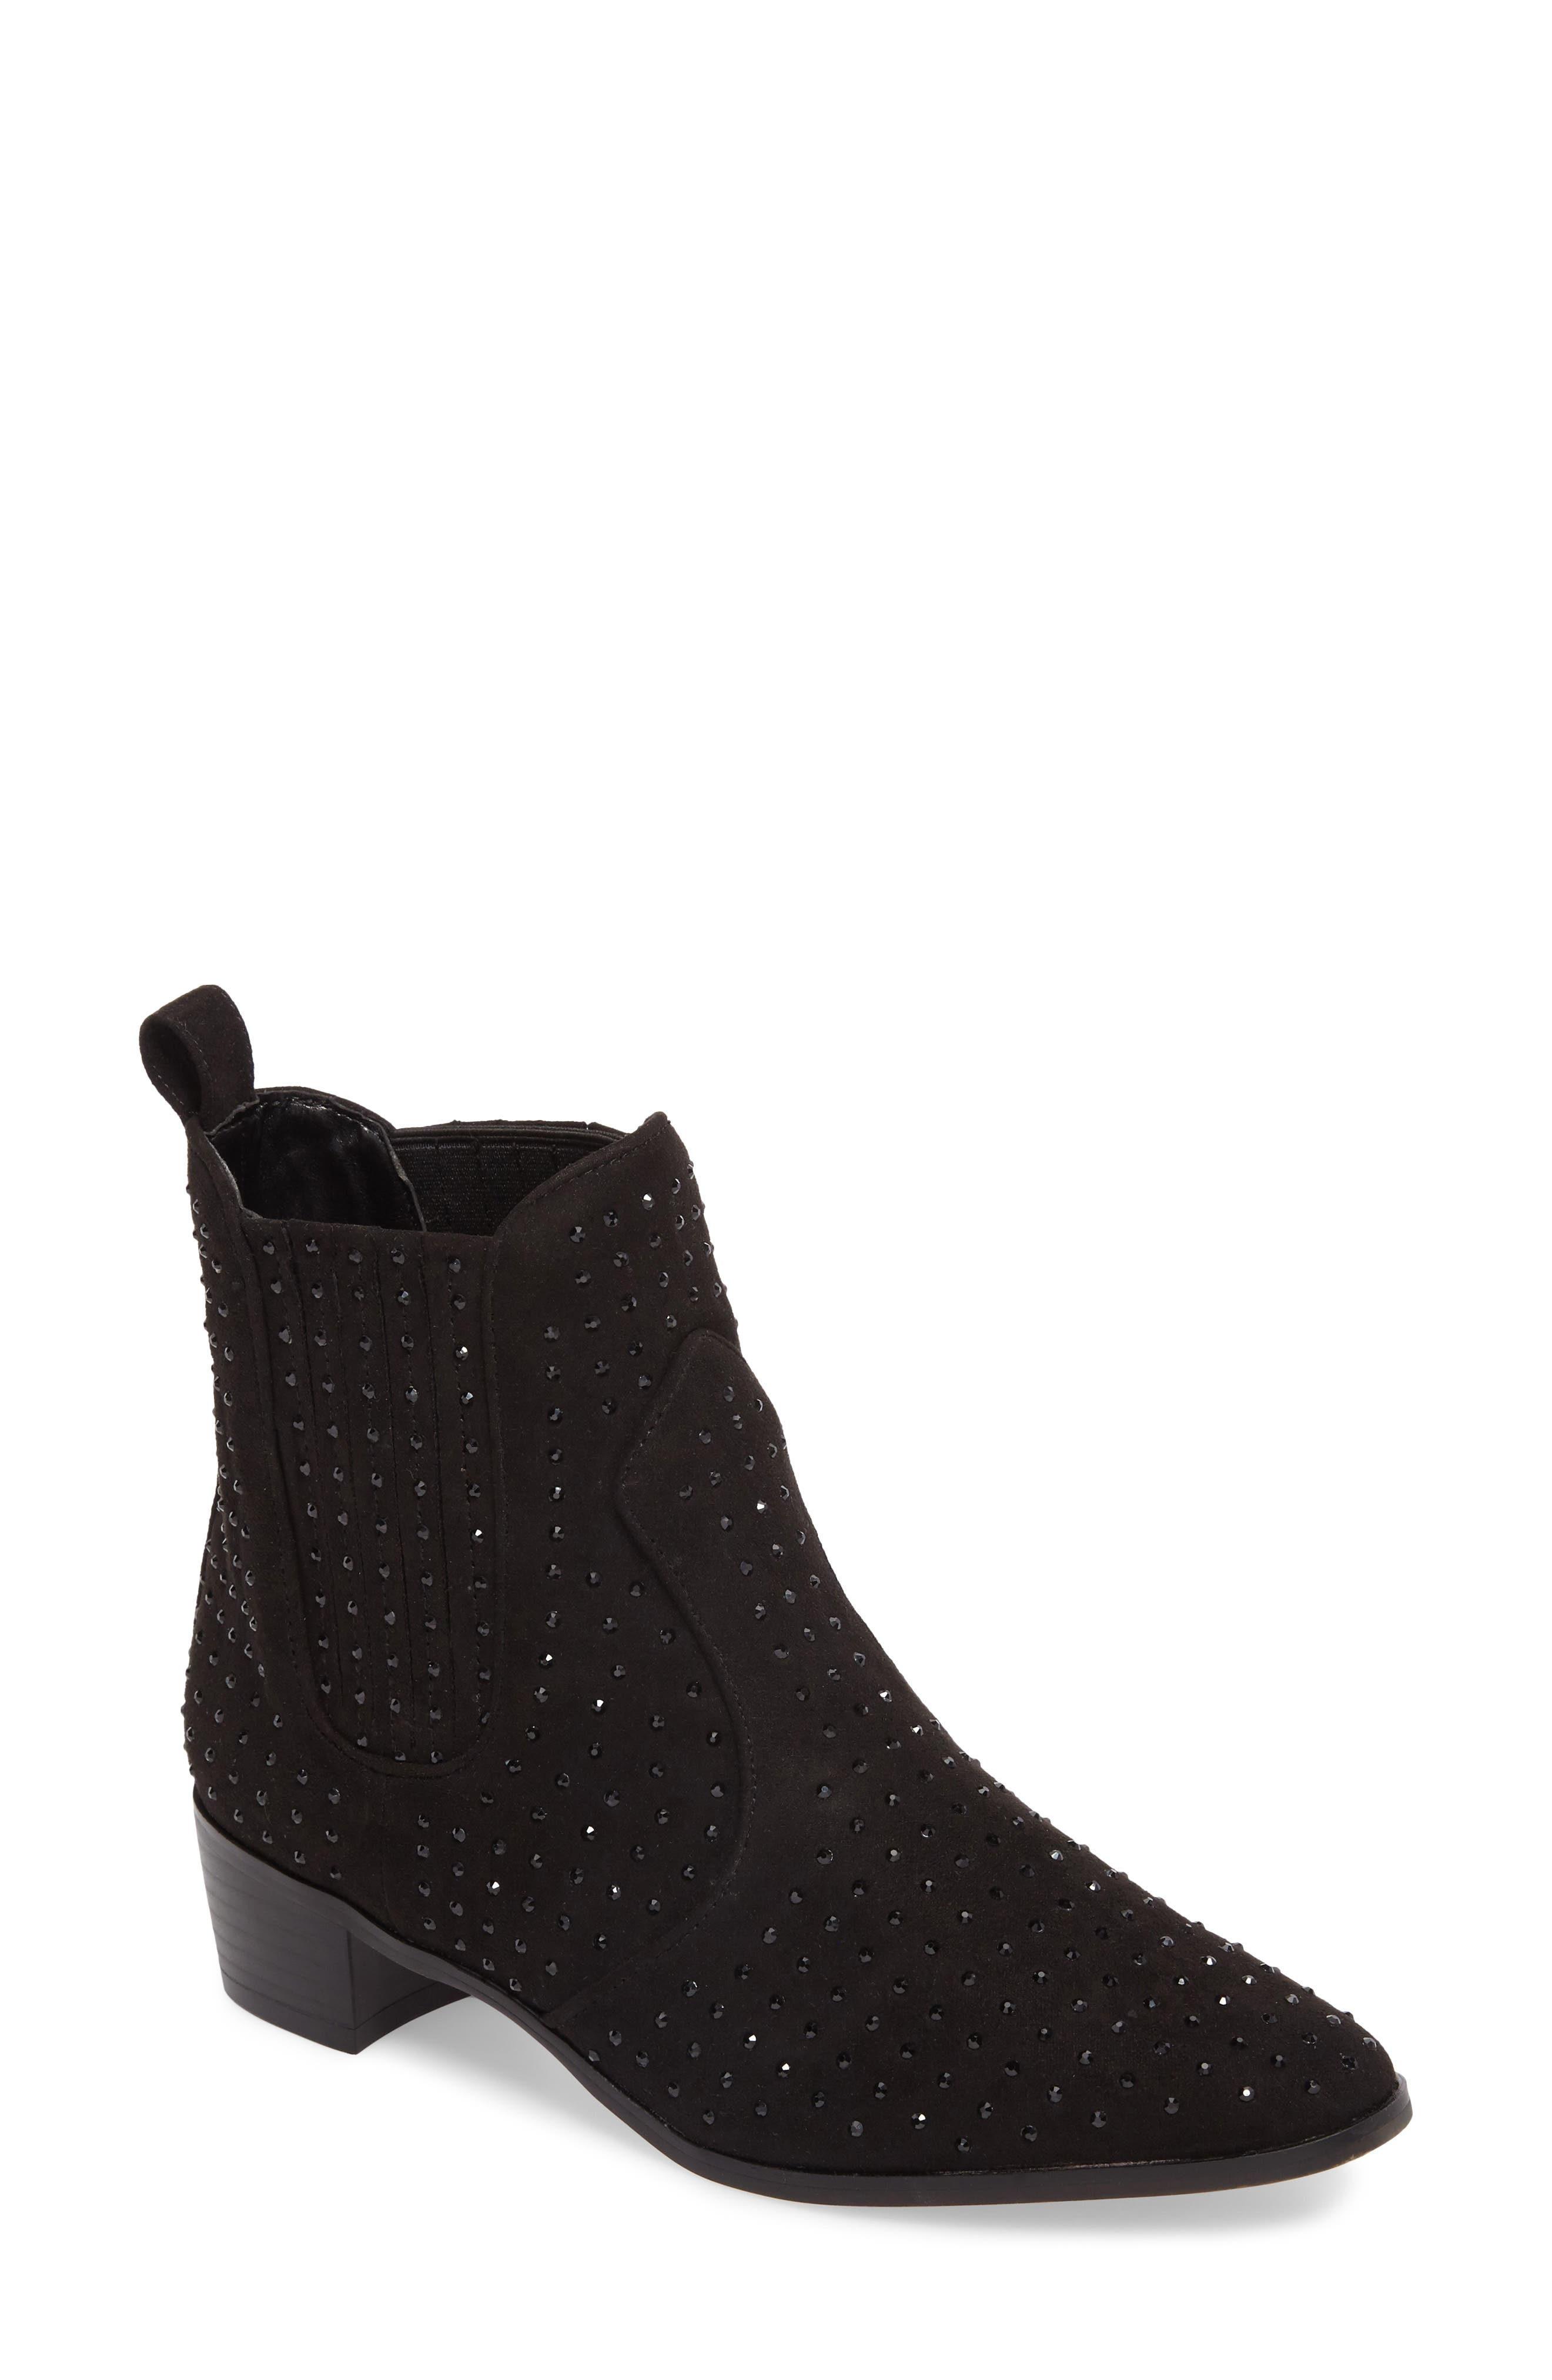 Ryan Bootie,                         Main,                         color, Black Suede